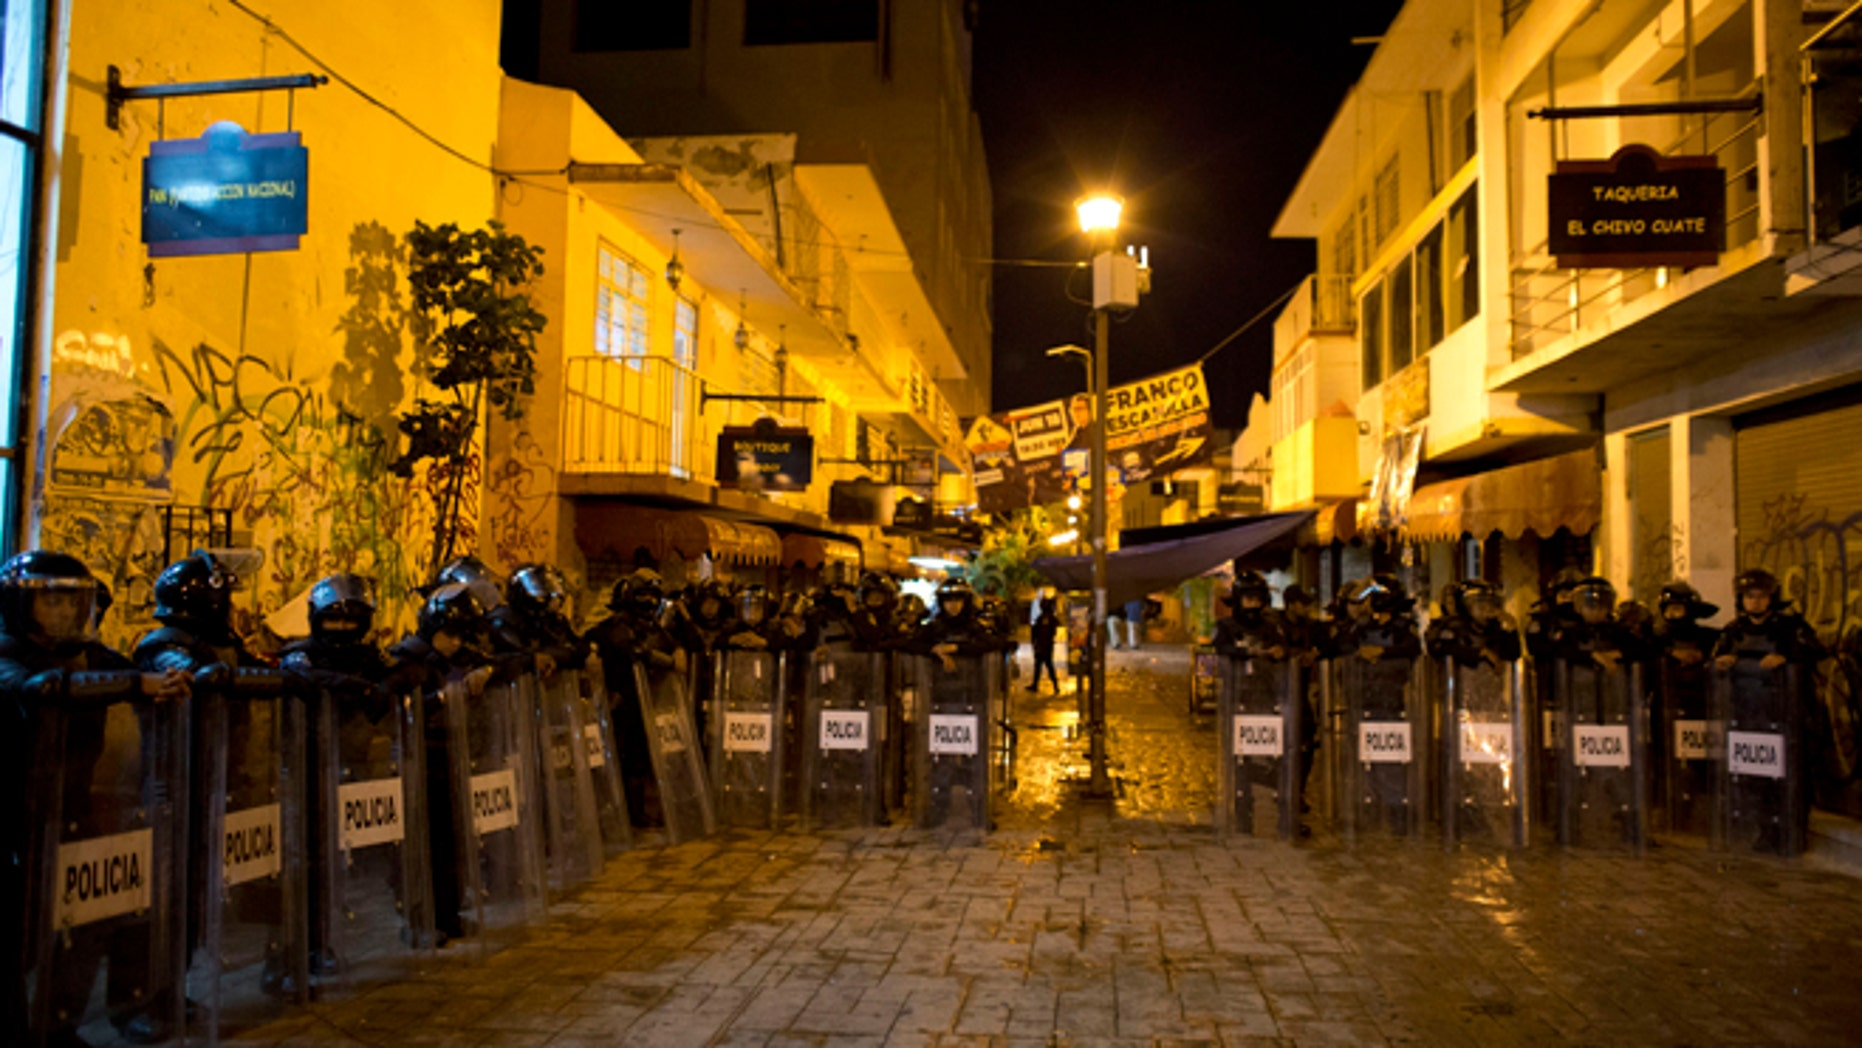 Police stand guard in the pedestrian street where a small explosive was tossed at National Action Party headquarters, in Chilpancingo, Mexico, in the early morning hours of Friday, June 5, 2015. Radical groups and unionized teachers have vowed to block Sunday's voting for the lower house of congress, nine governorships and hundreds of mayorships. (AP Photo/Rebecca Blackwell)